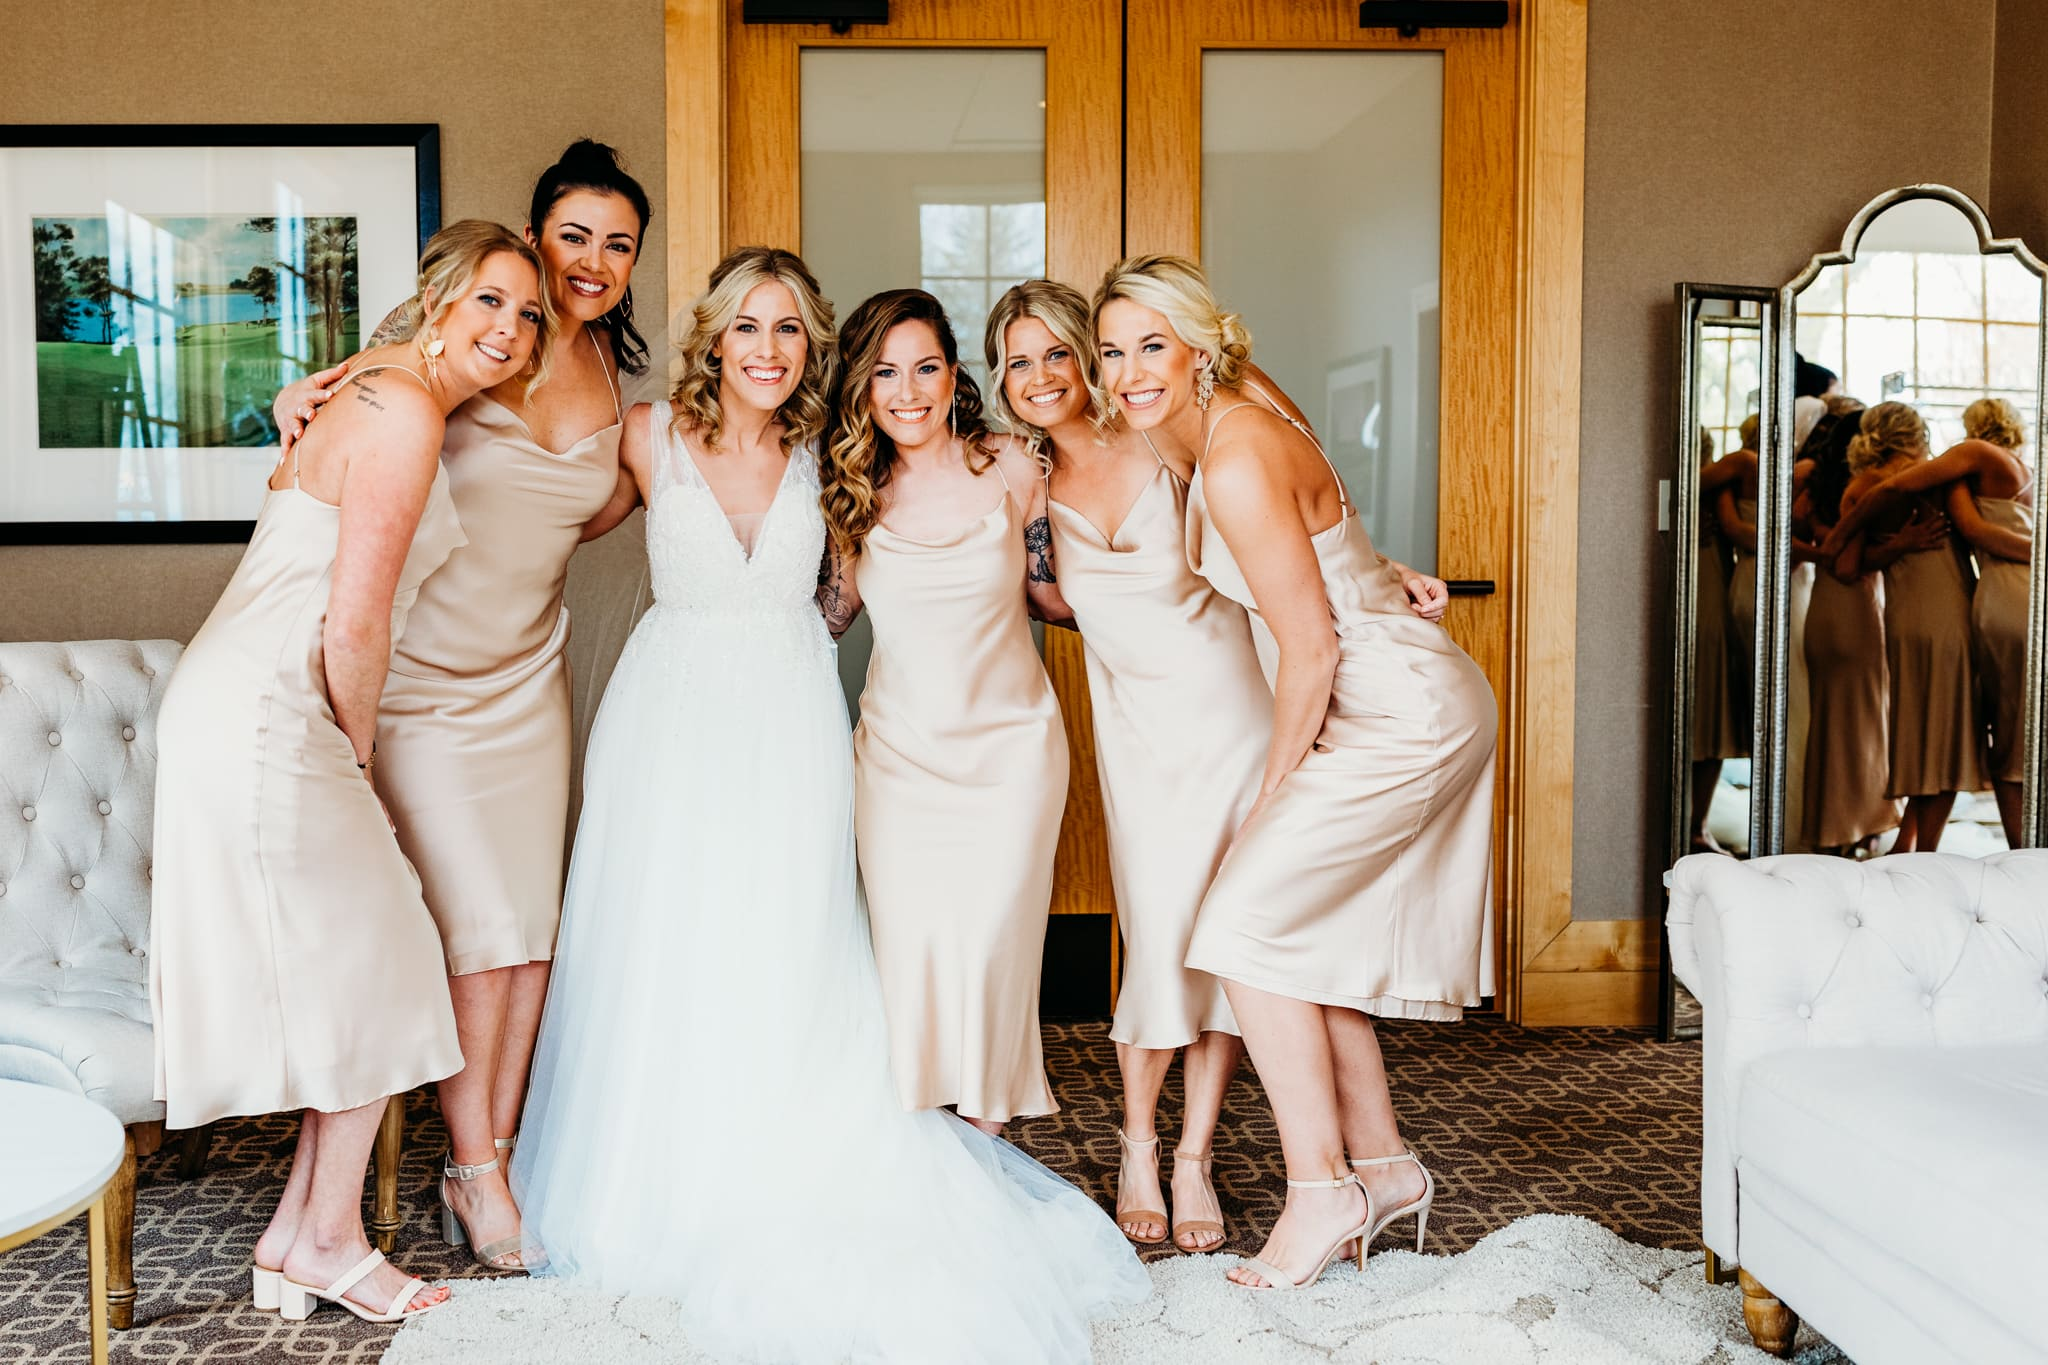 Minneapolis Wedding Photographer captures brides and bridesmaids smiling at the camera before first look